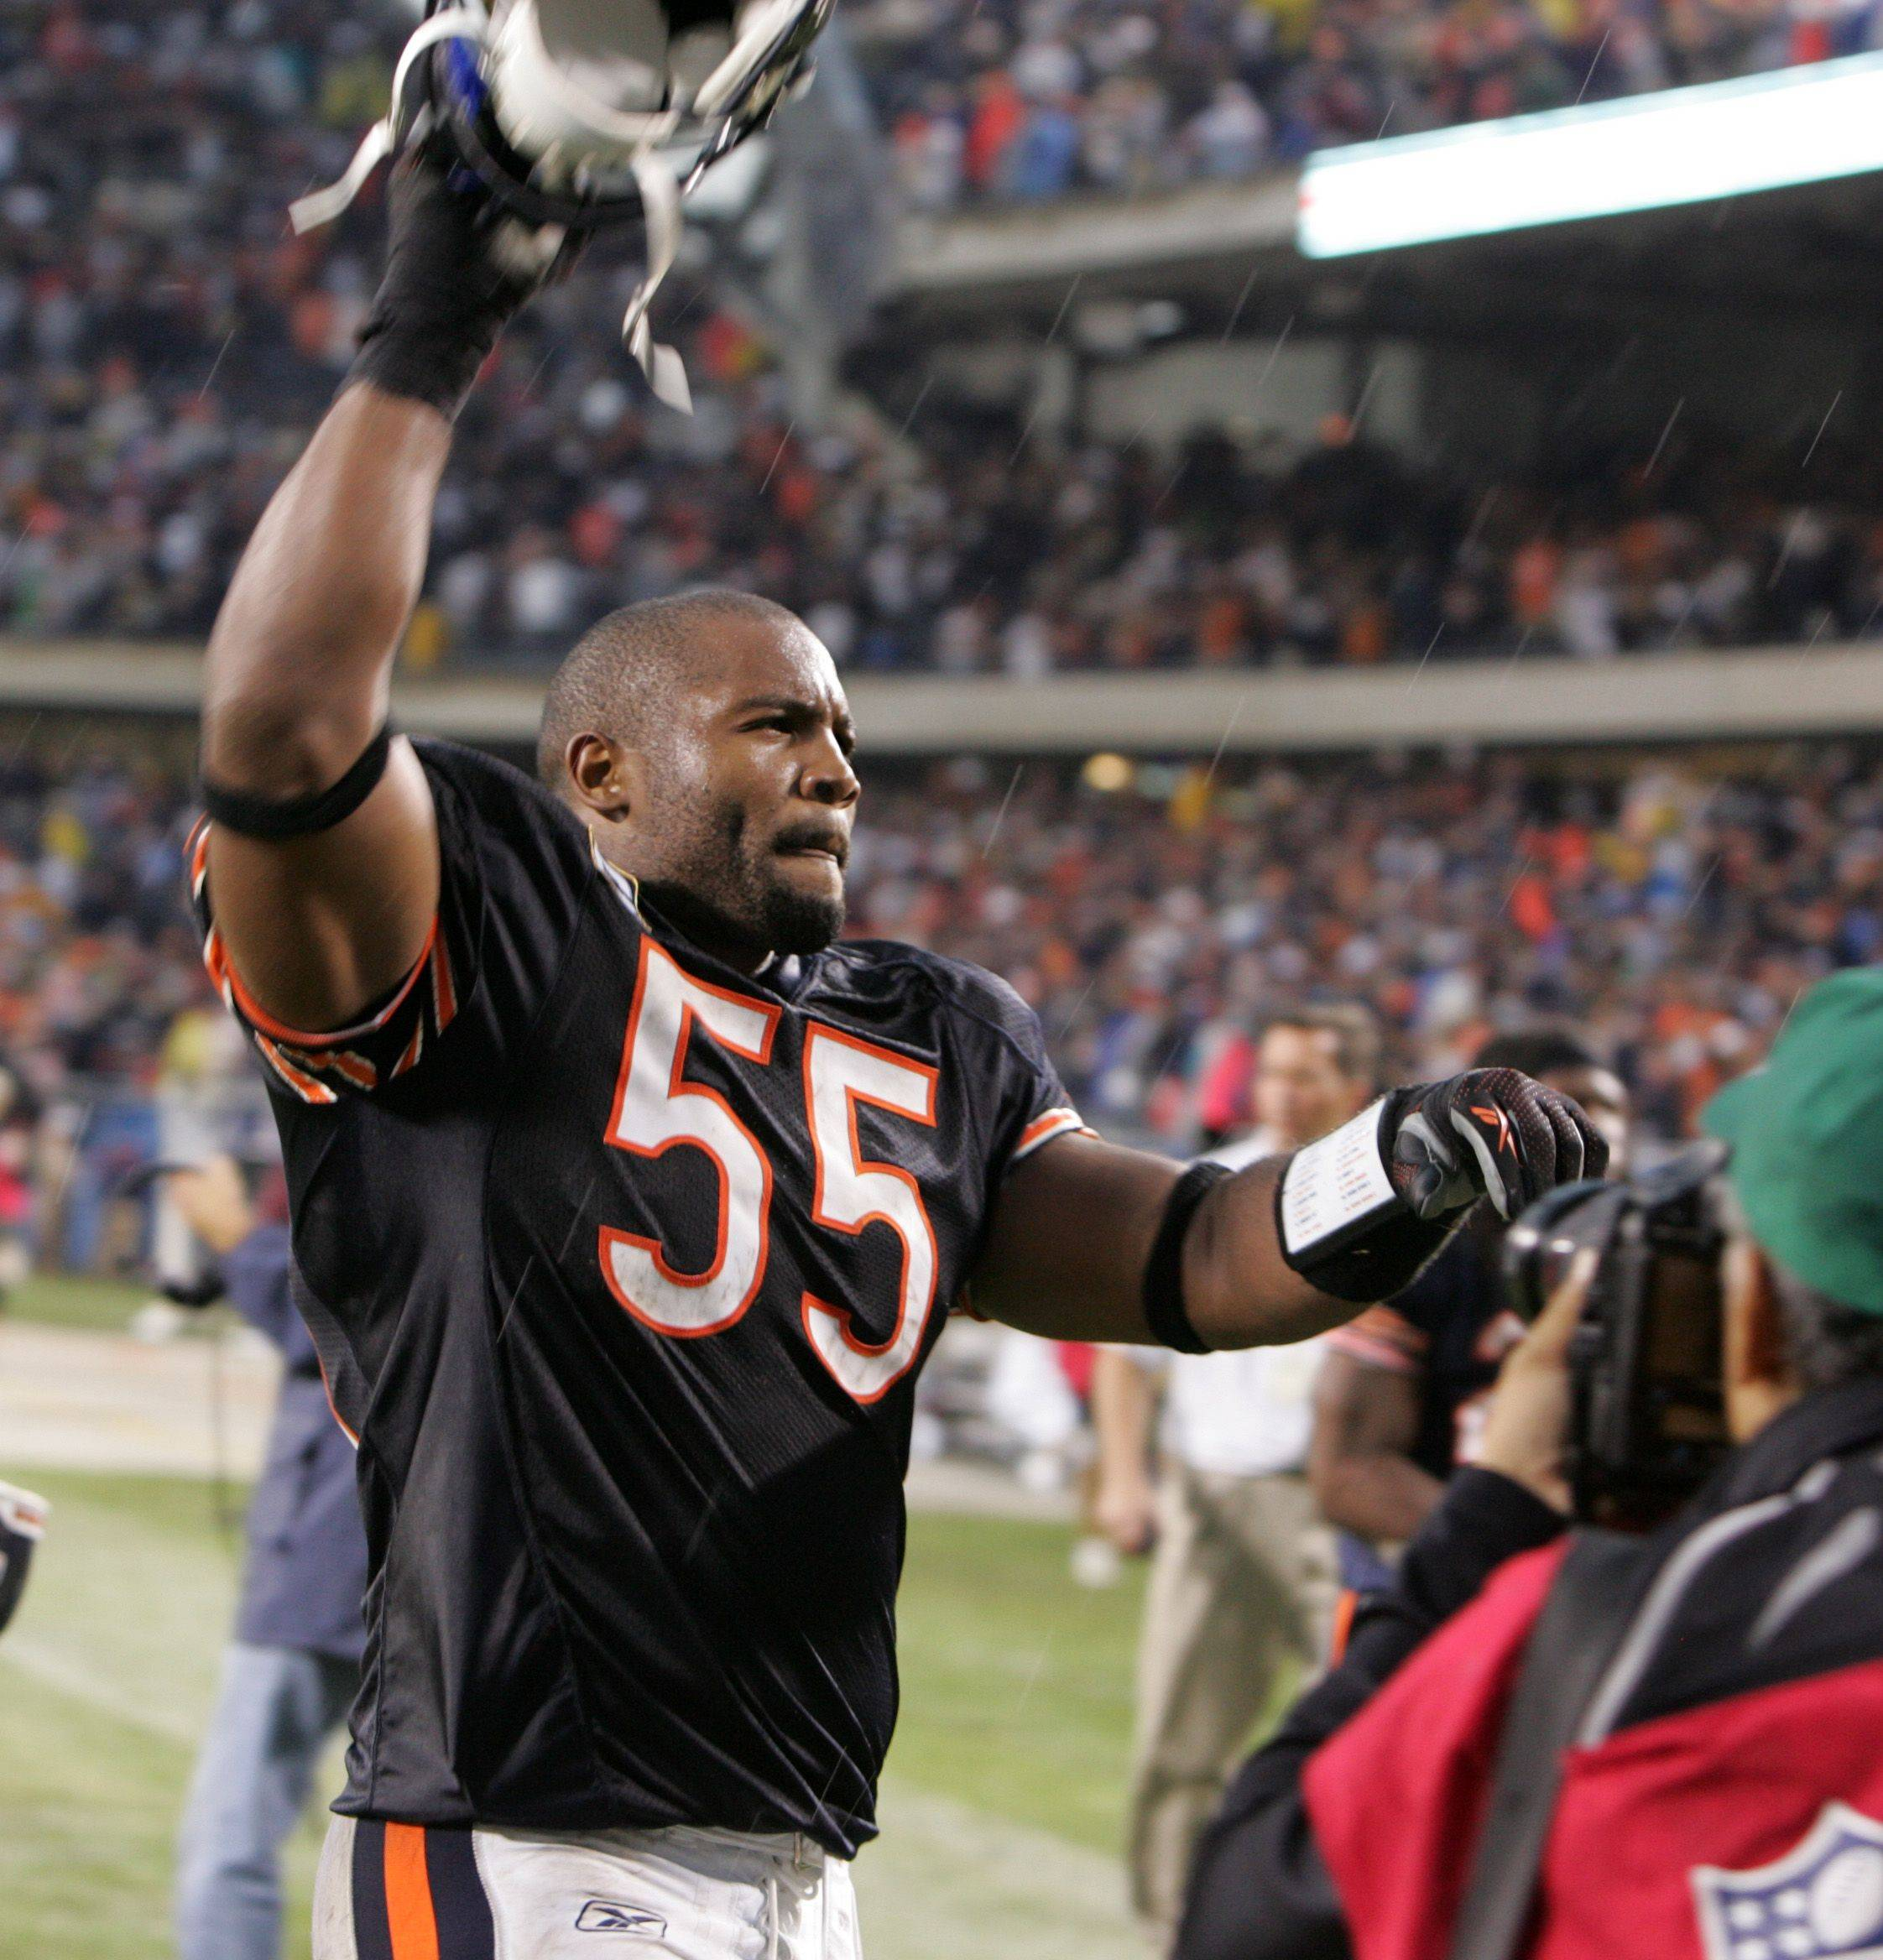 Bears linebacker Lance Briggs had no complaints in 2008 when he signed his current contract, which already has paid him better than $21 million.